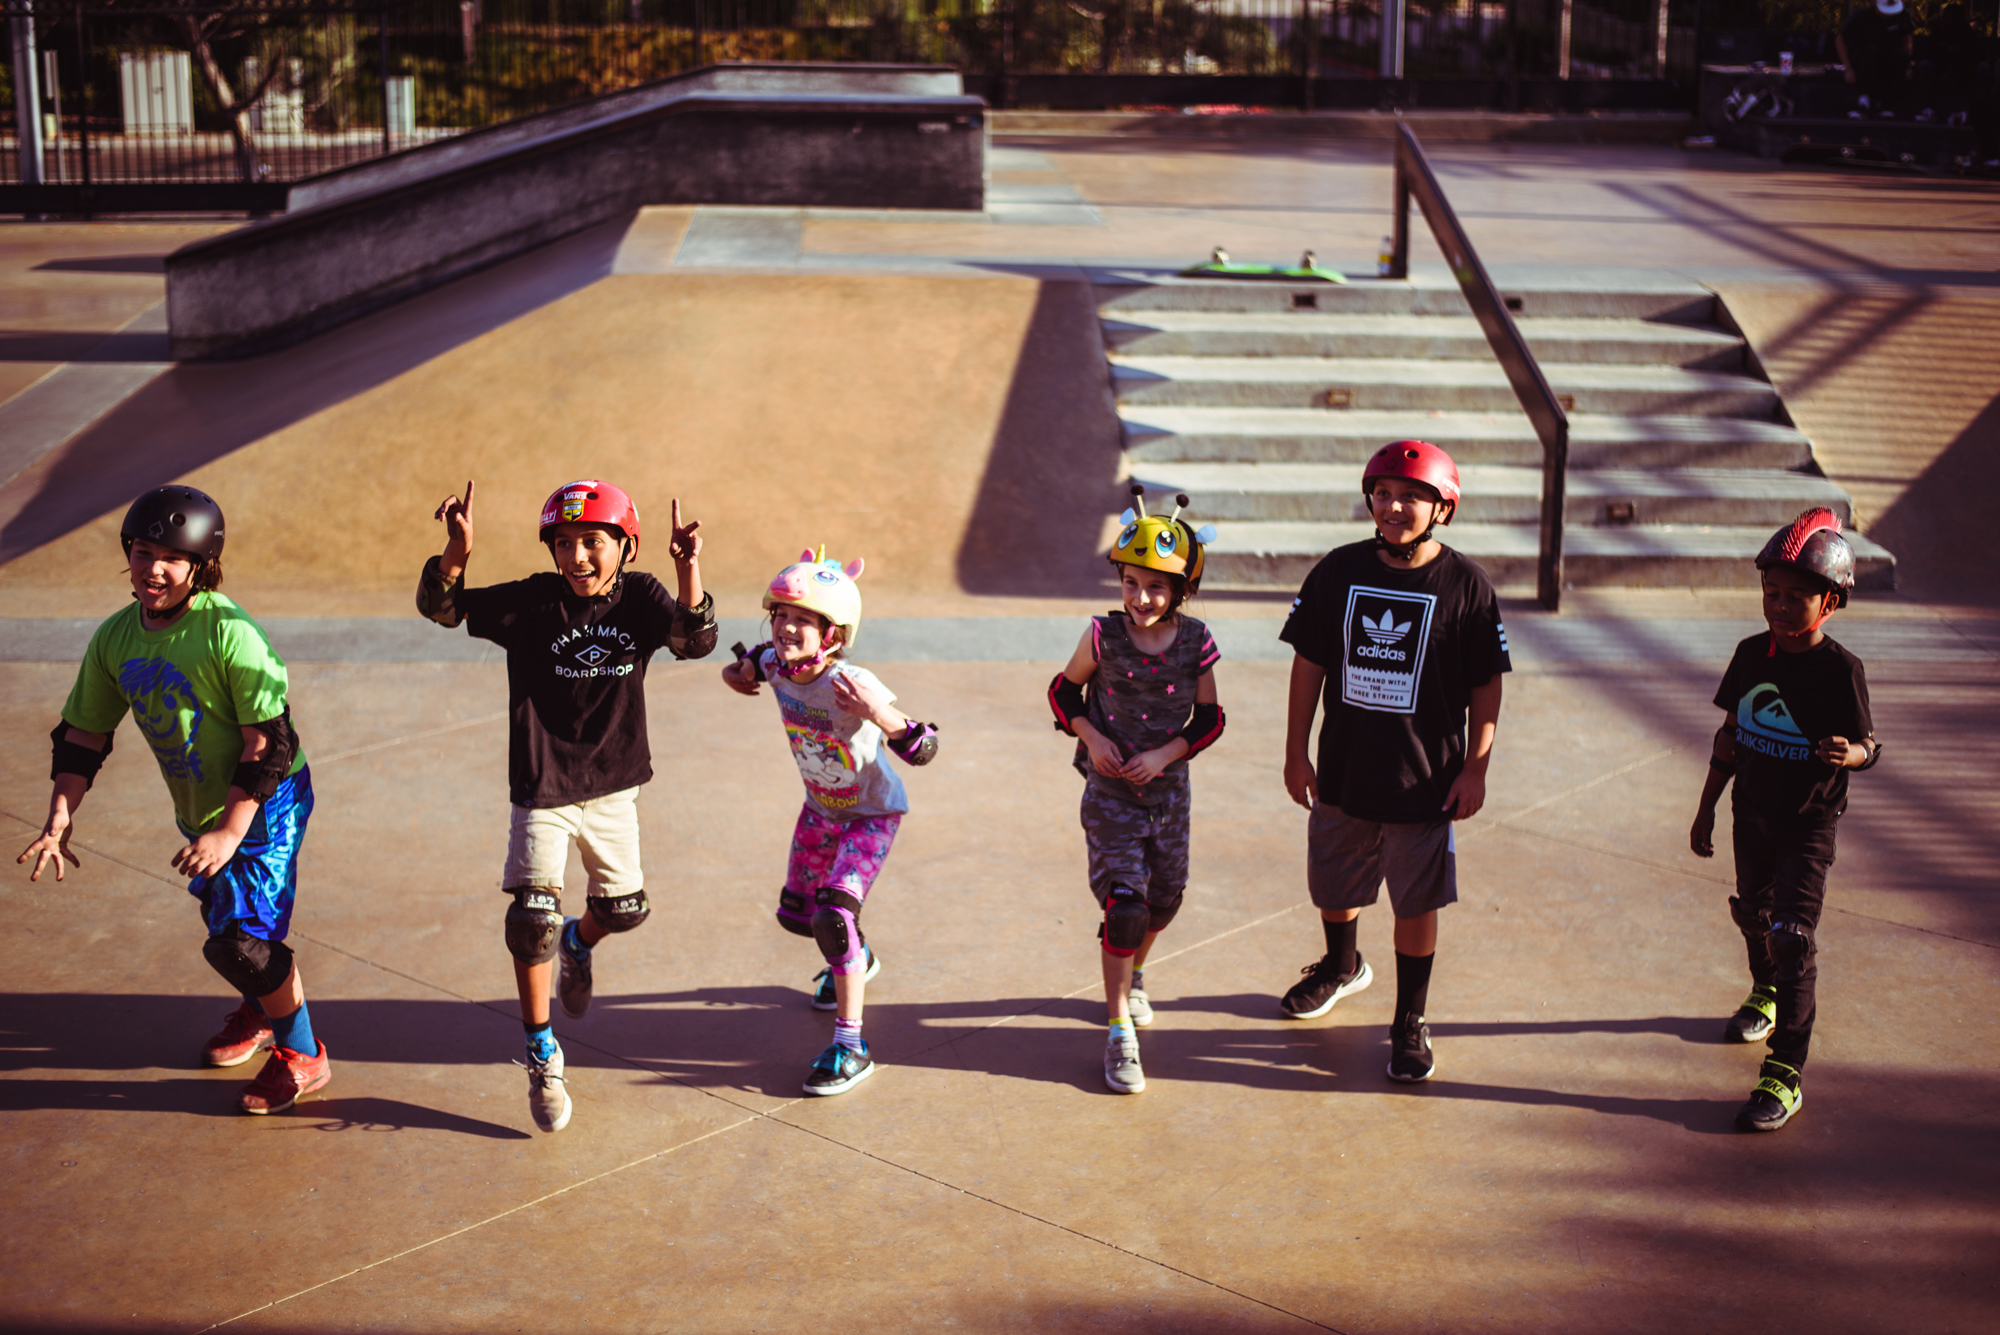 Skateboard Birthday Party-27.jpg